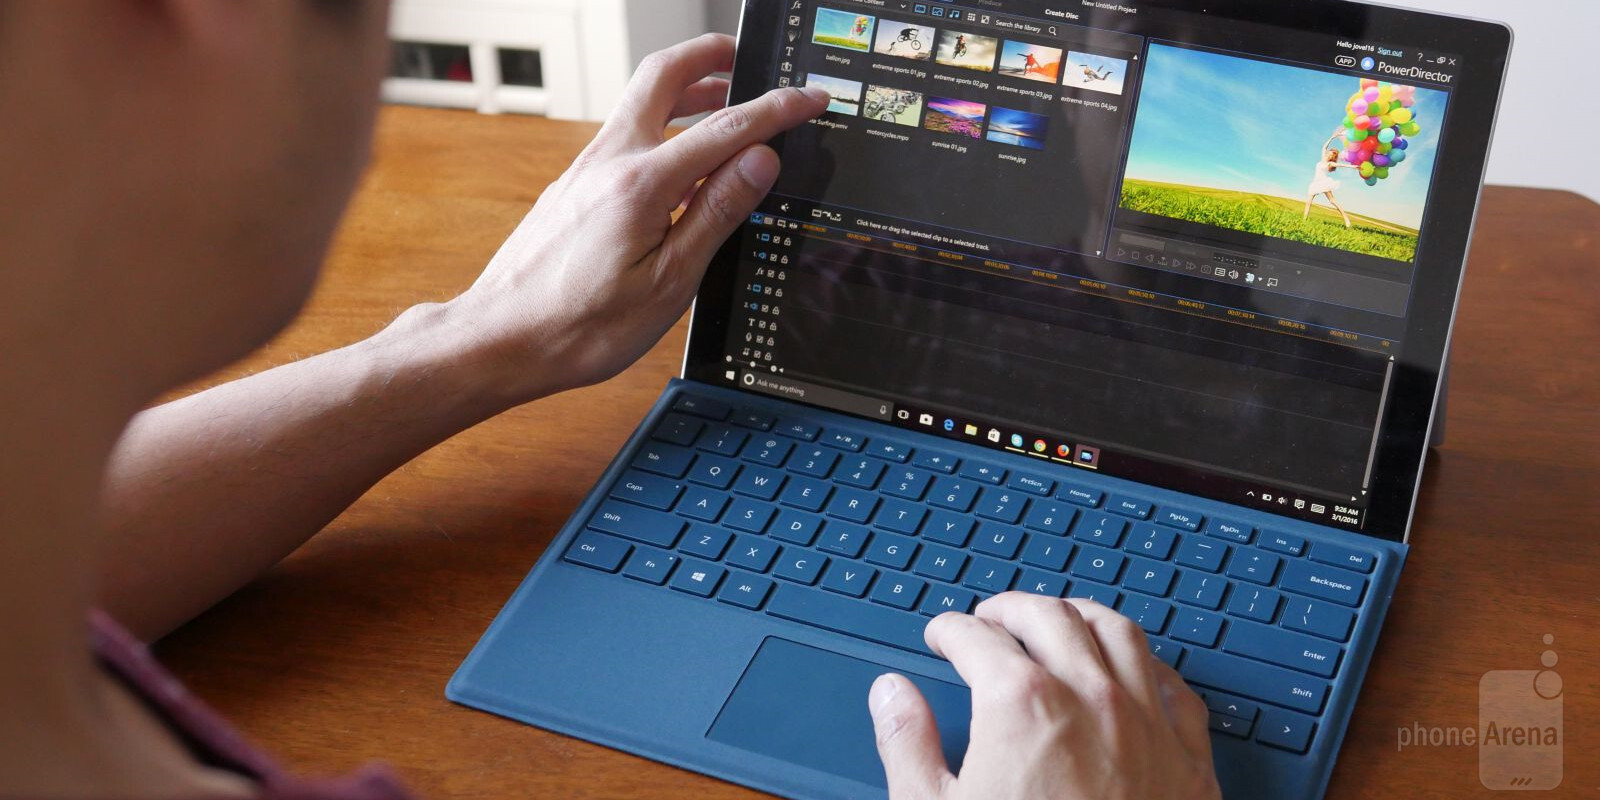 with the Microsoft Surface Pro 4: The best tablet-laptop hybrid around